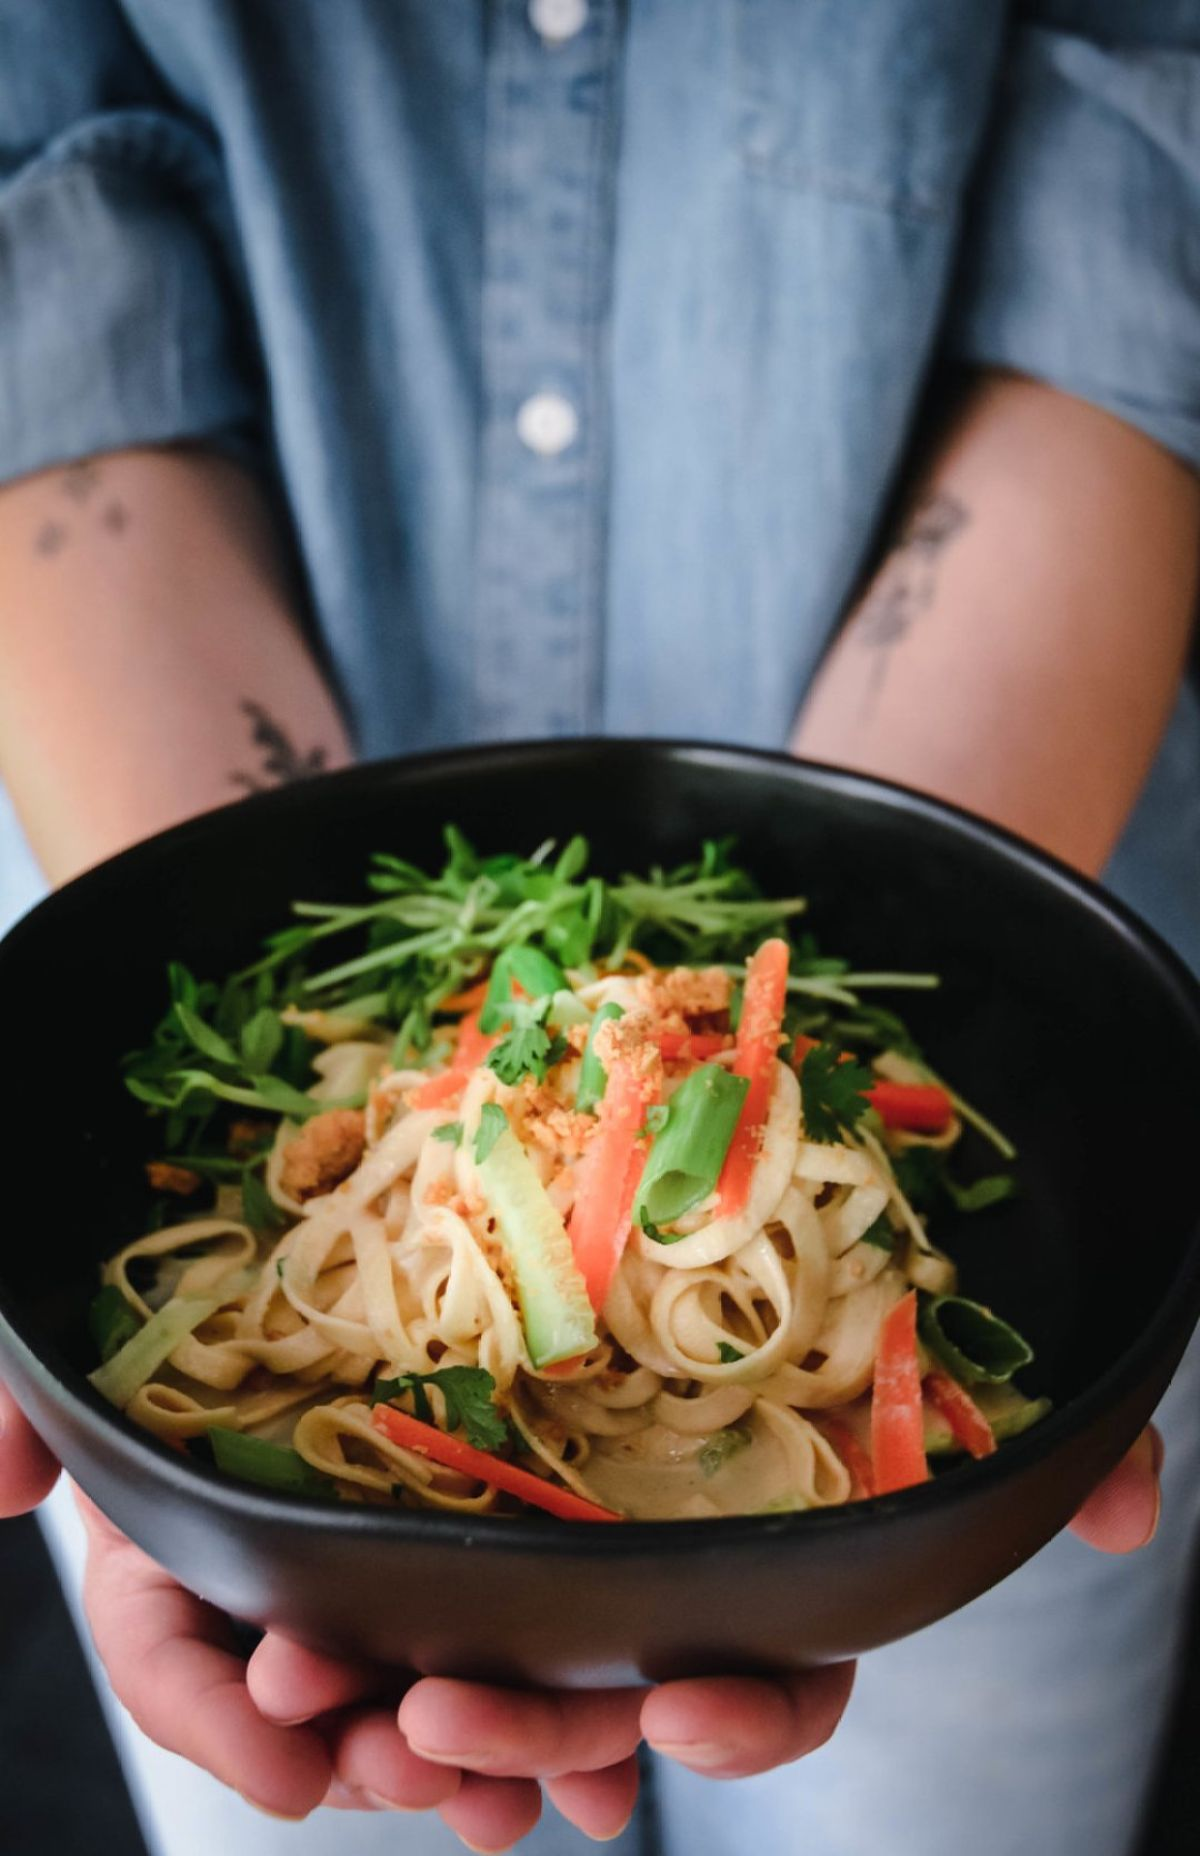 Two hands hold a black bowl containing rutabag oodles, and spiralized vegetables